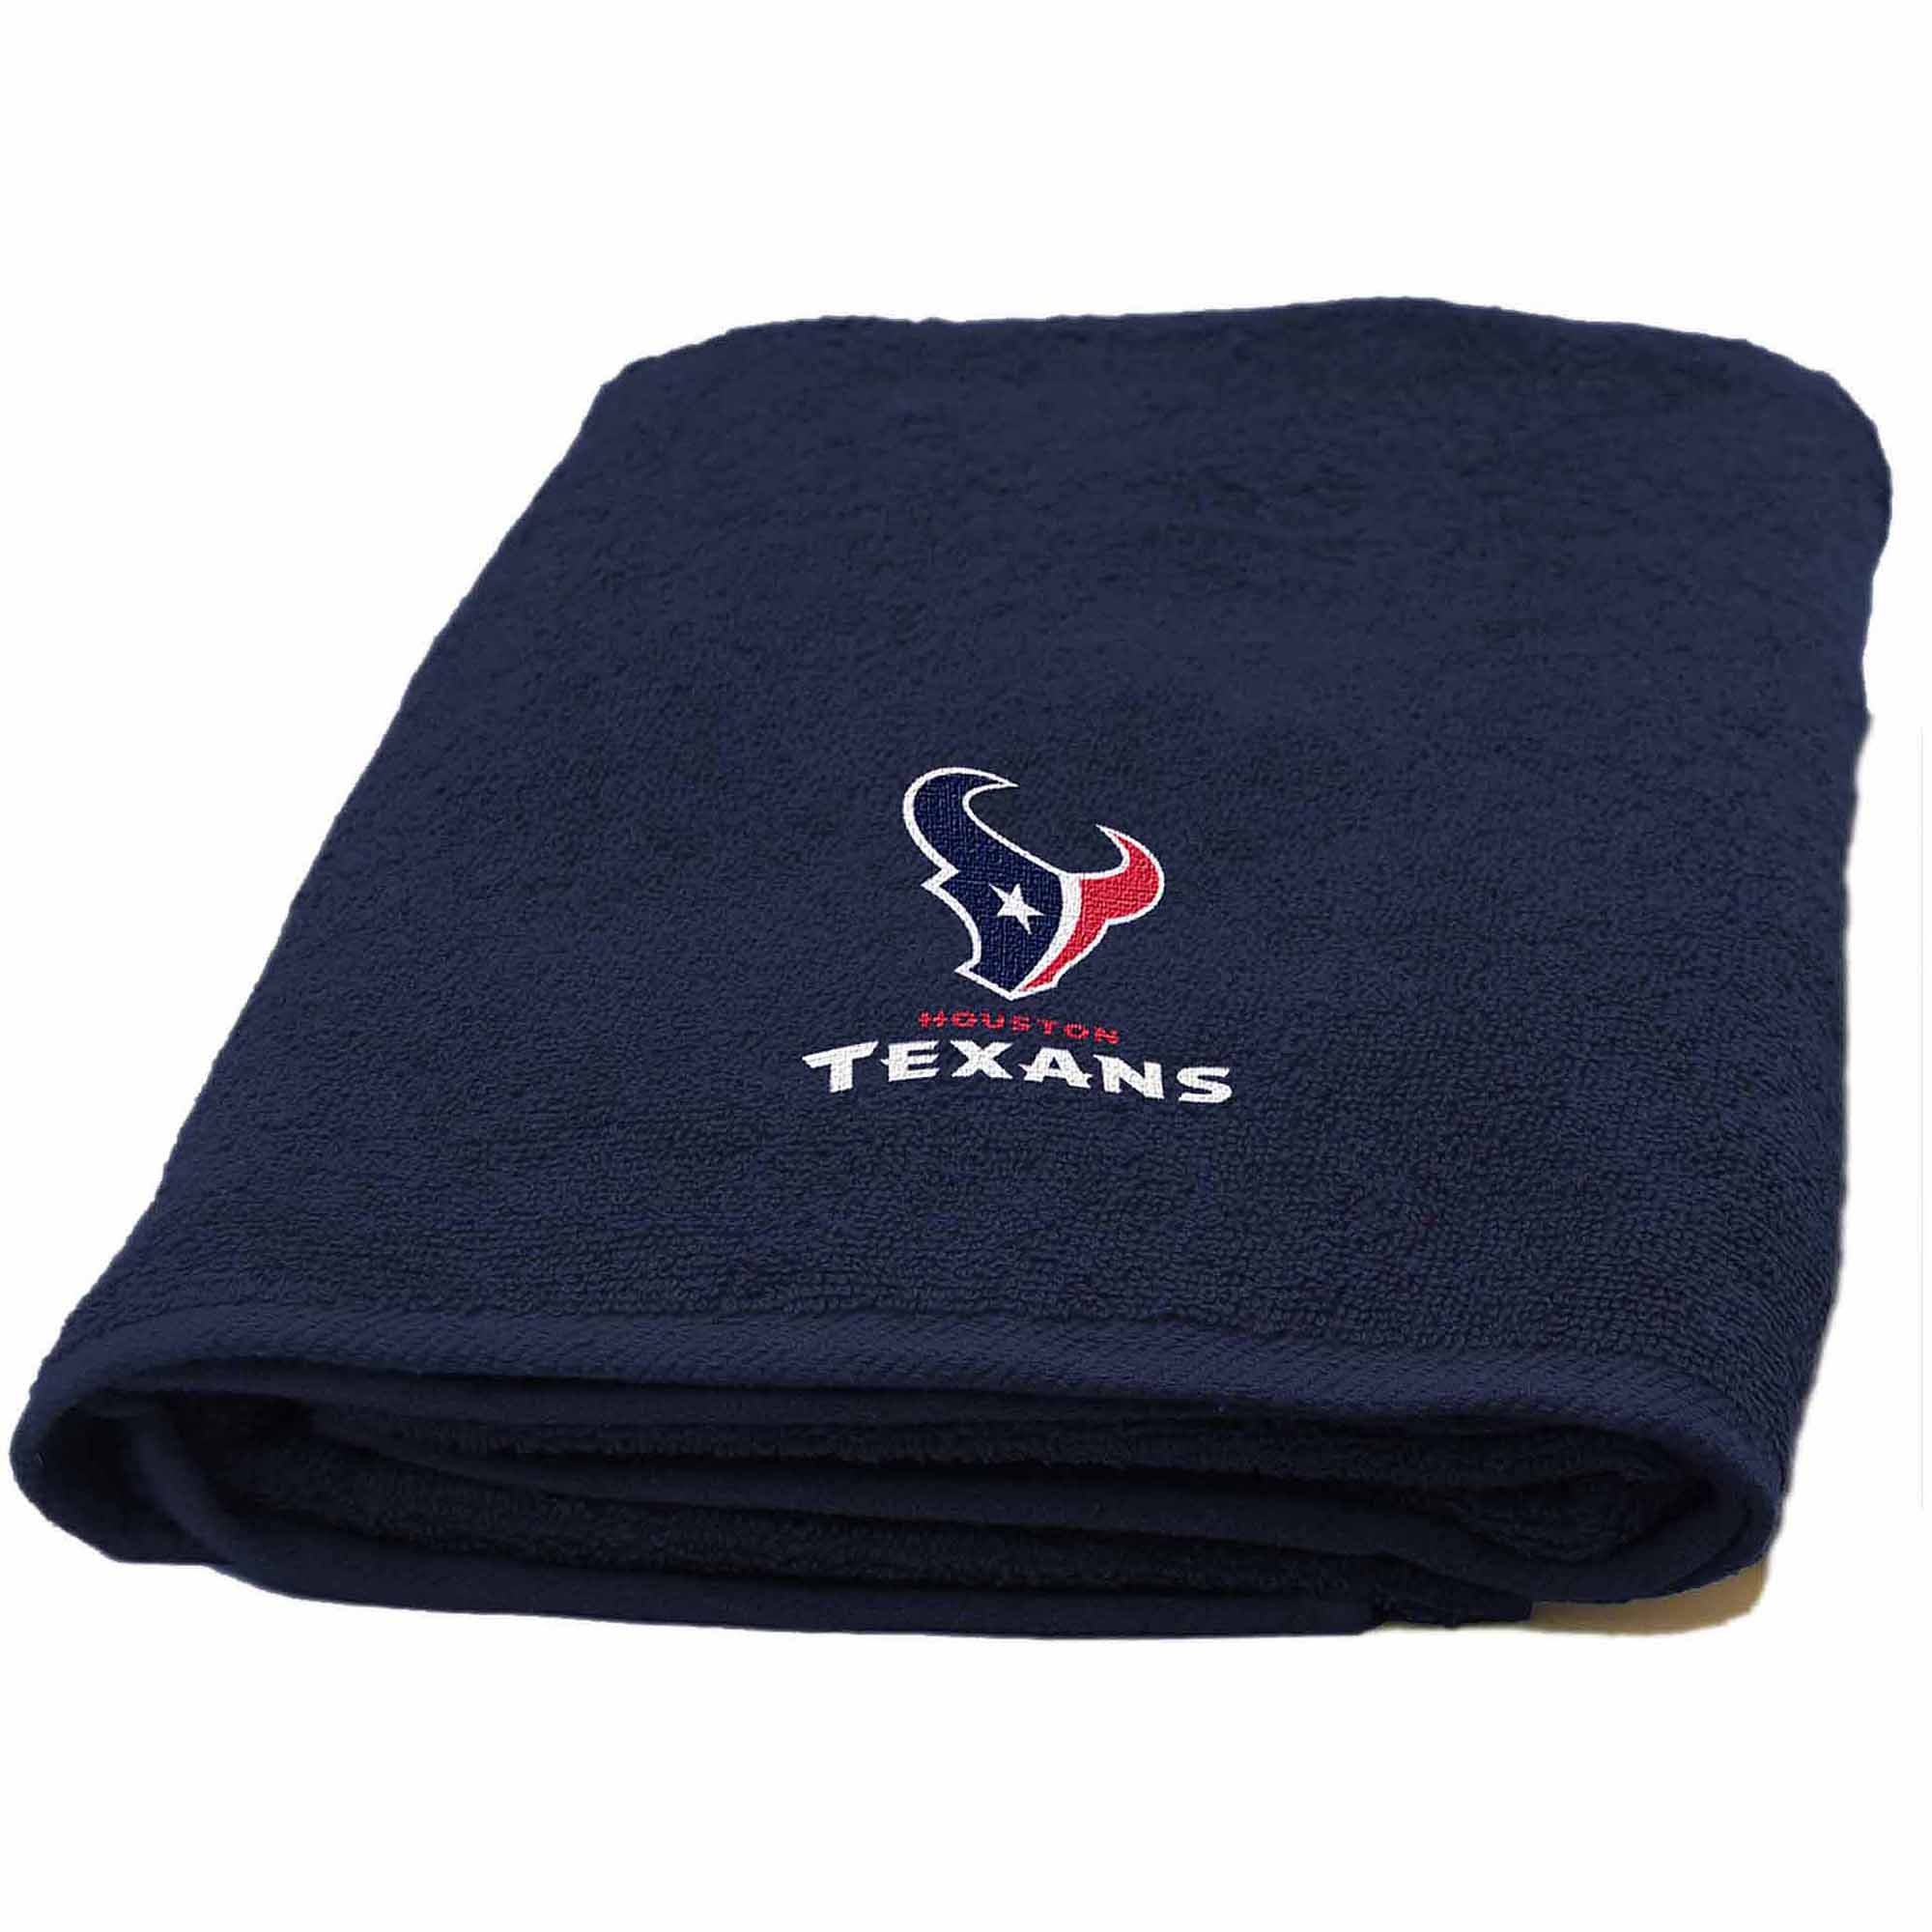 NCAA Houston Texans Decorative Bath Collection - Bath Towel